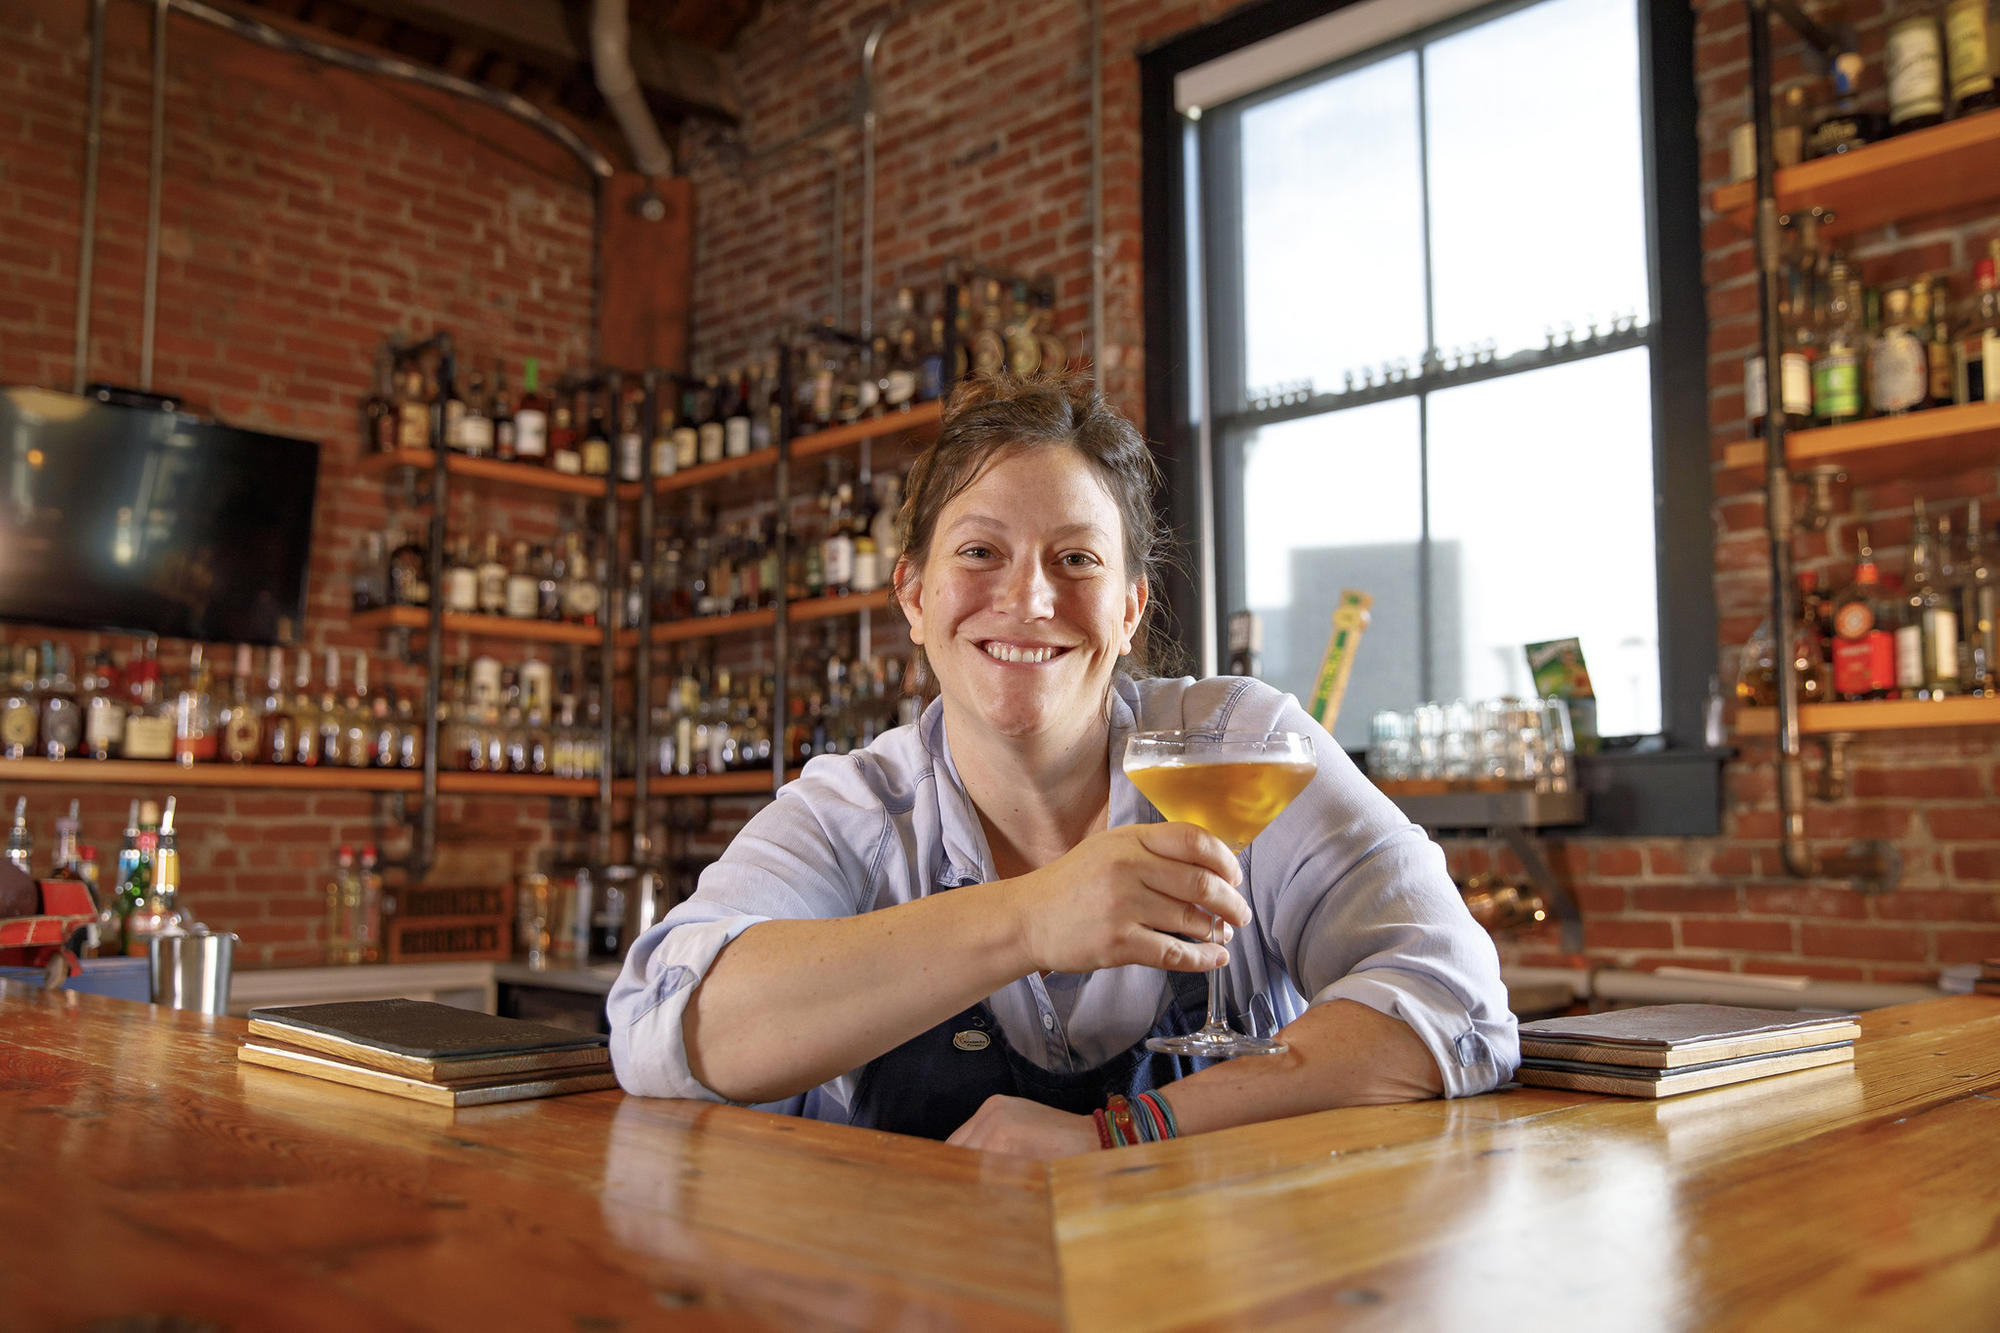 Former Chicago chef Sara Bradley competes on 'Top Chef' in Kentucky, w...